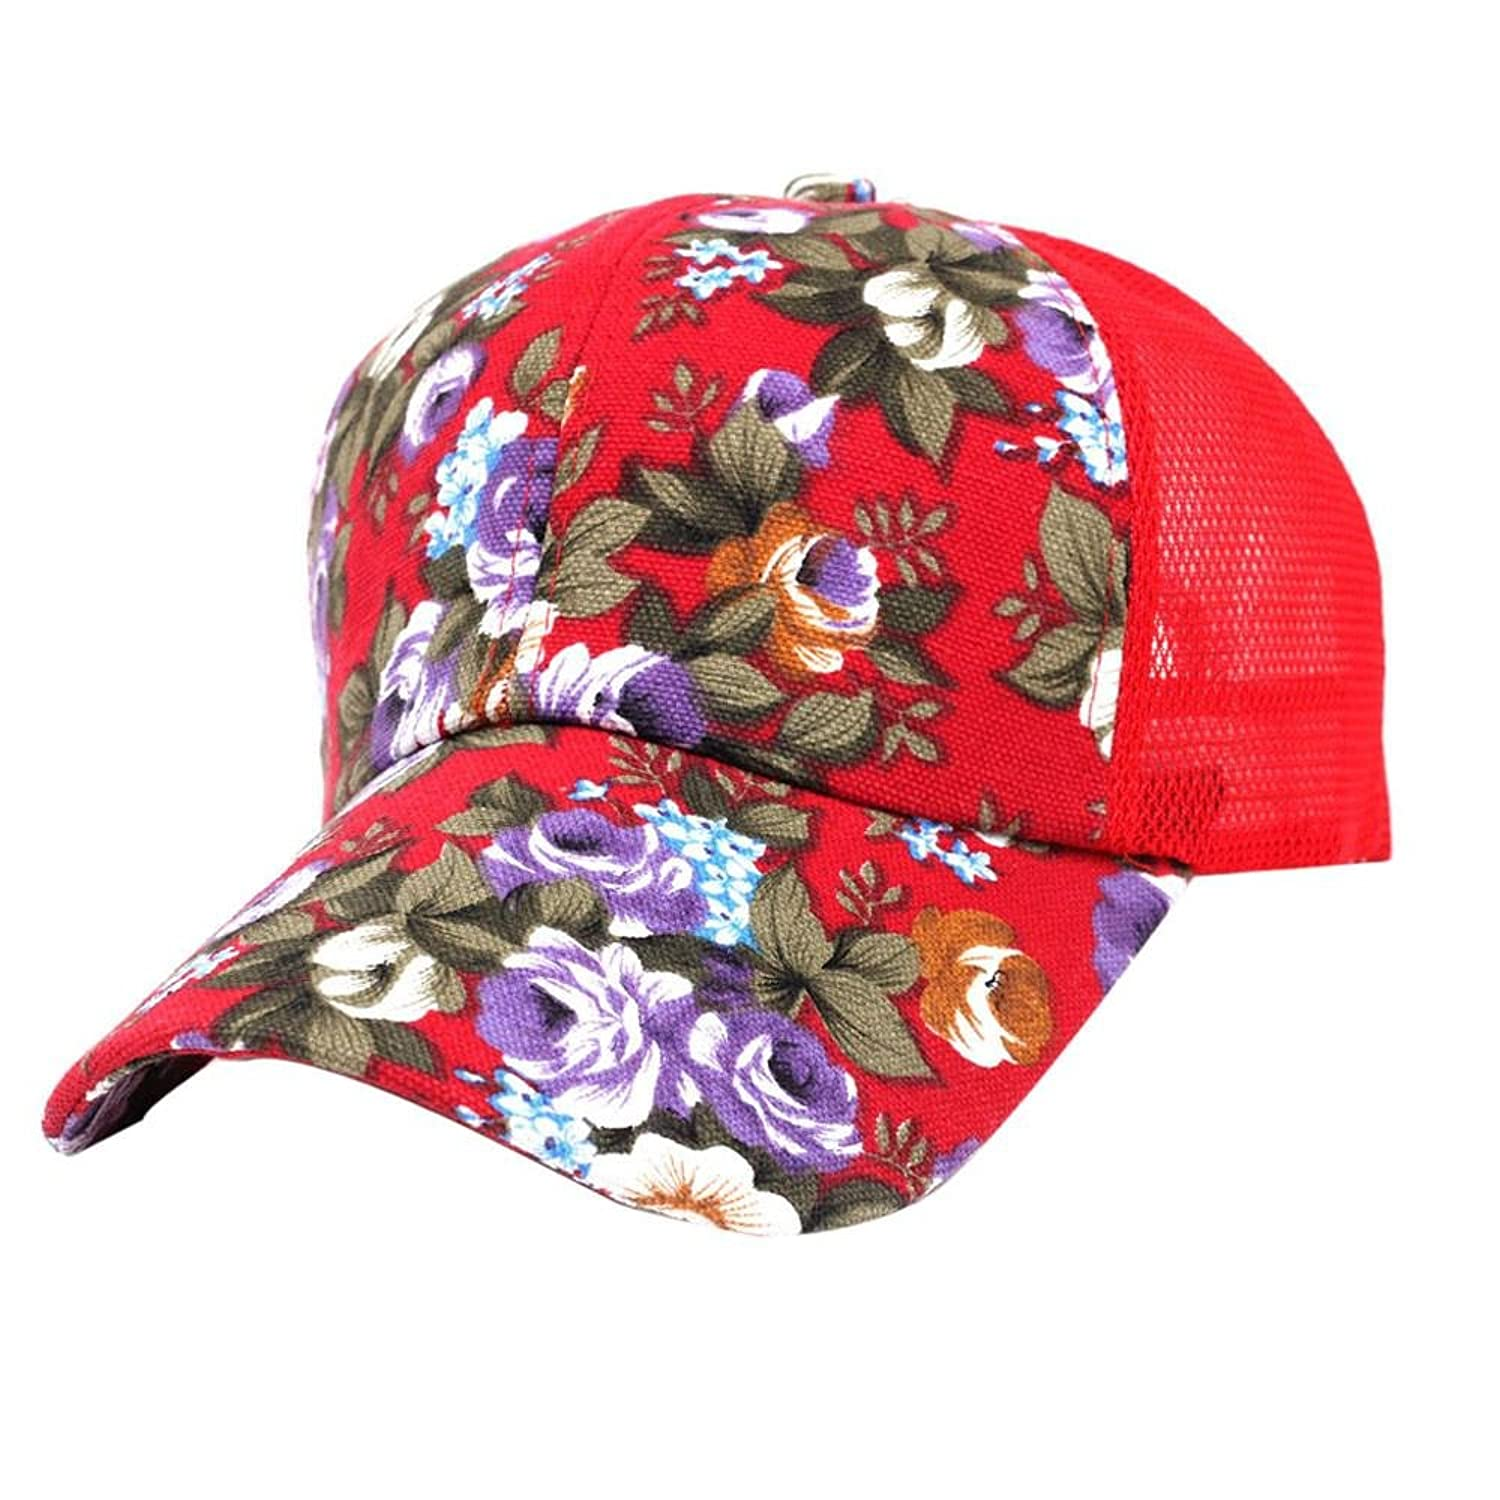 Baseball Caps, Fineshow Embroidery Cotton Baseball Cap Unisex Hip Hop Flat Hat